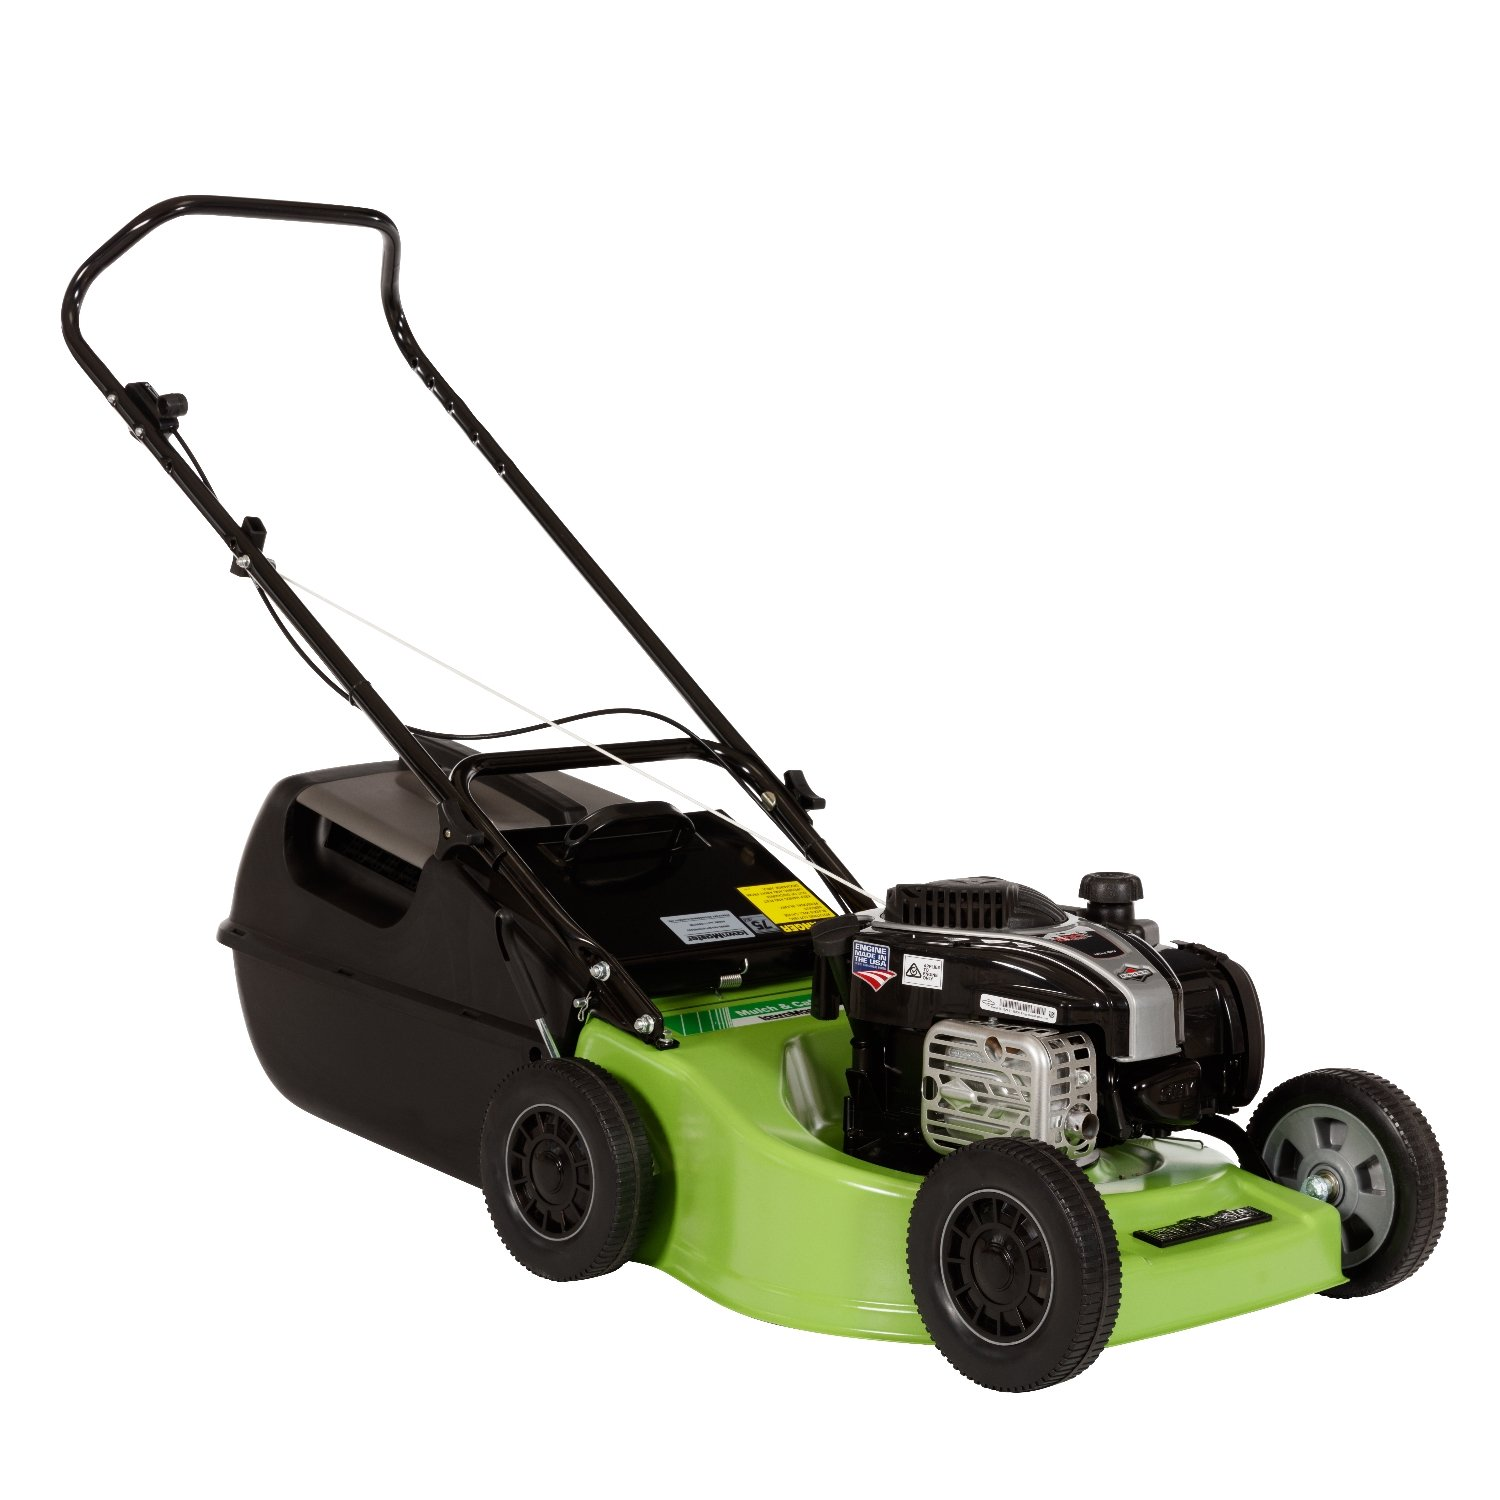 Estate ReadyStart, Buy, sale, dunedin, Green Island, Otago, Cheap, Lawn Mower, New, Quality